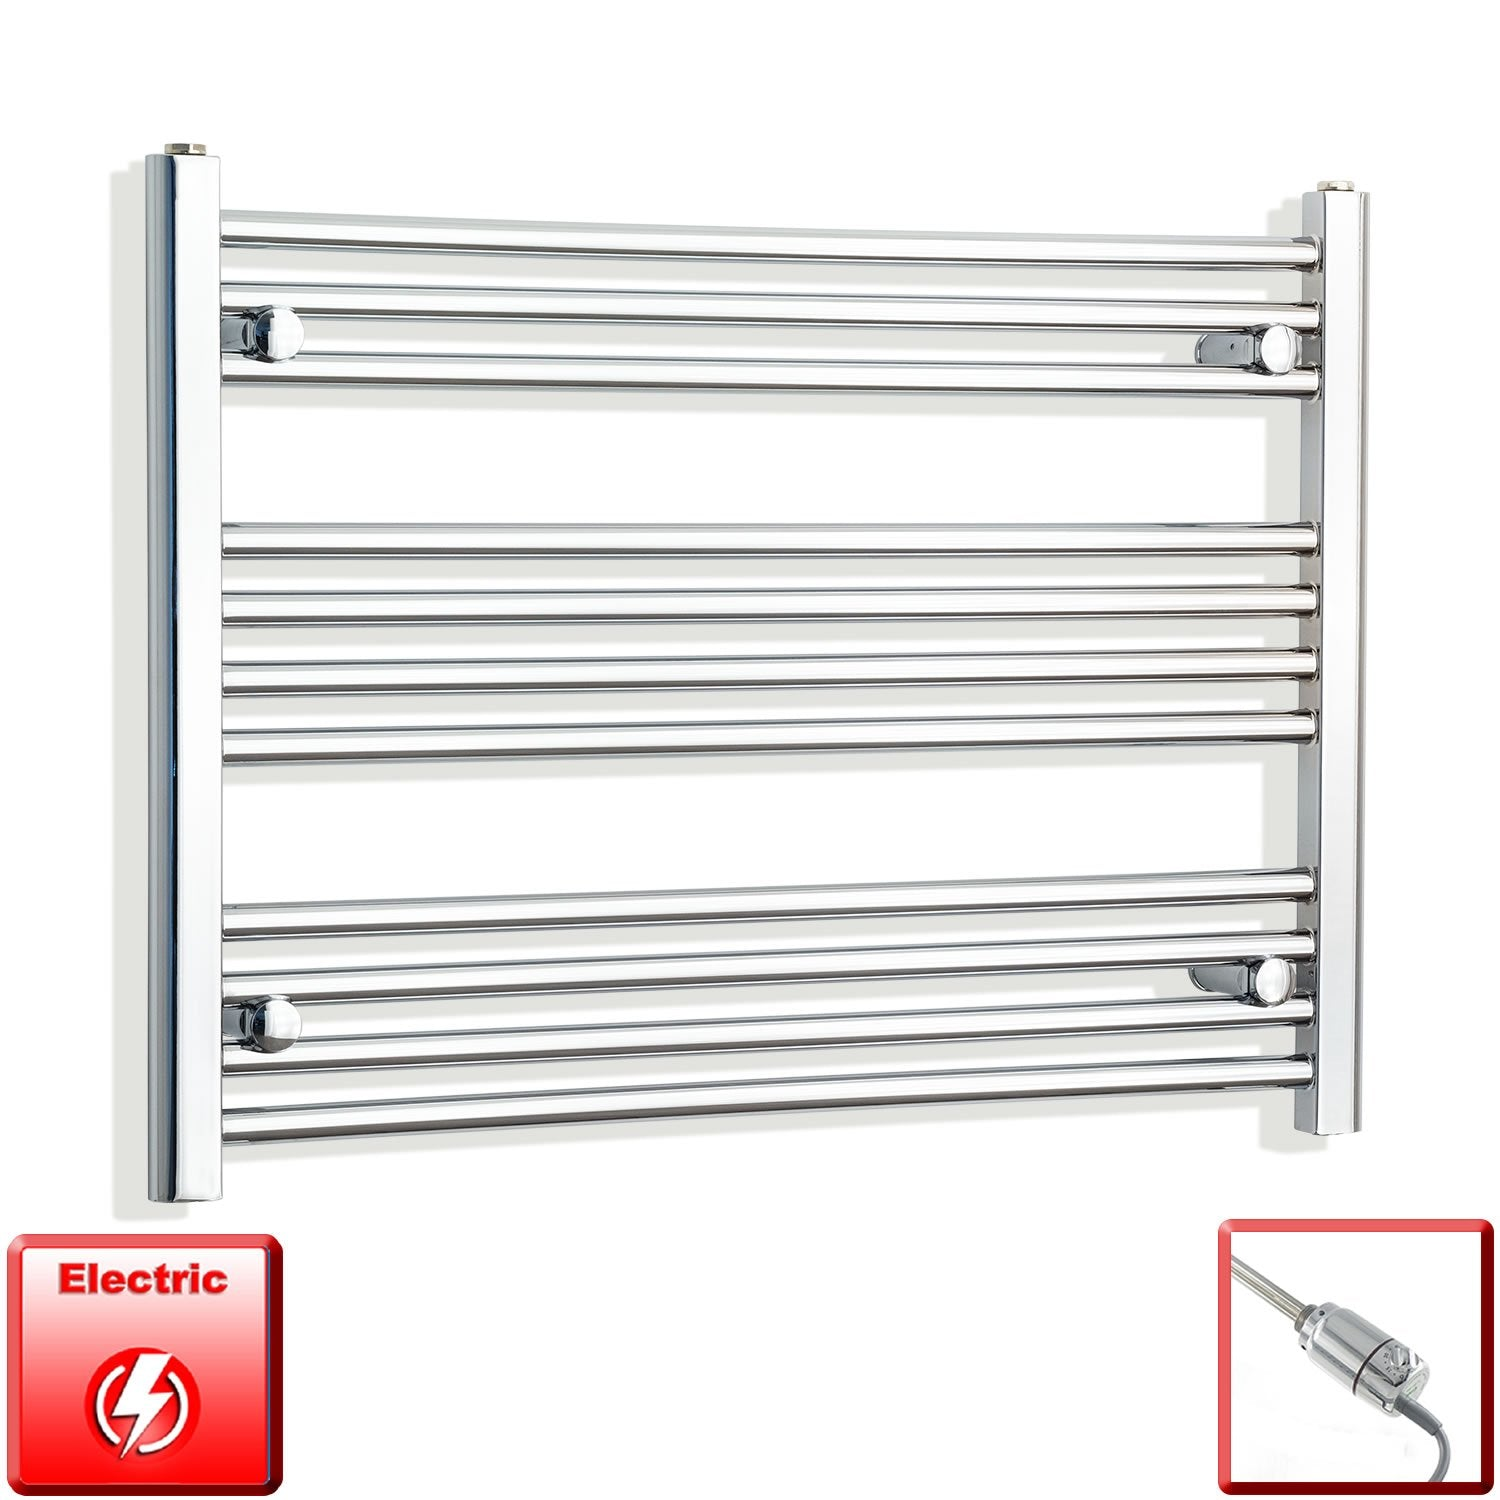 950mm Wide 600mm High Flat Chrome Pre-Filled Electric Heated Towel Rail Radiator HTR,GT Thermostatic